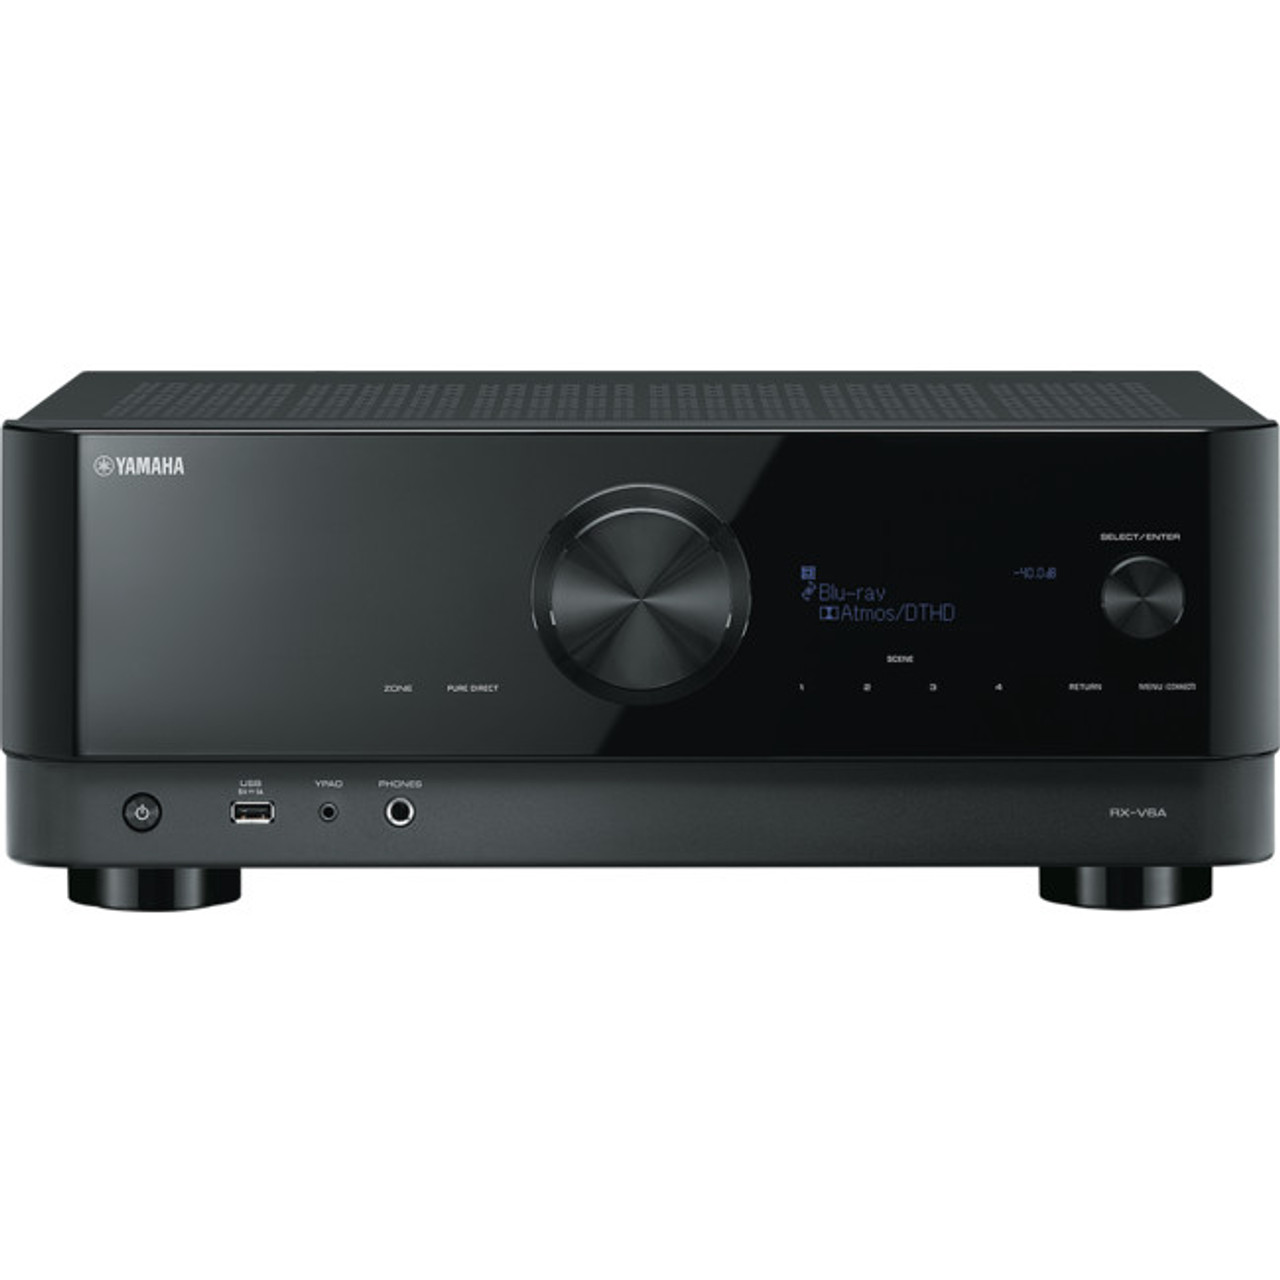 Yamaha RX-V6A 7.2Ch 4K AV Receiver with Cinema DSP 3D and Dolby Atmos®